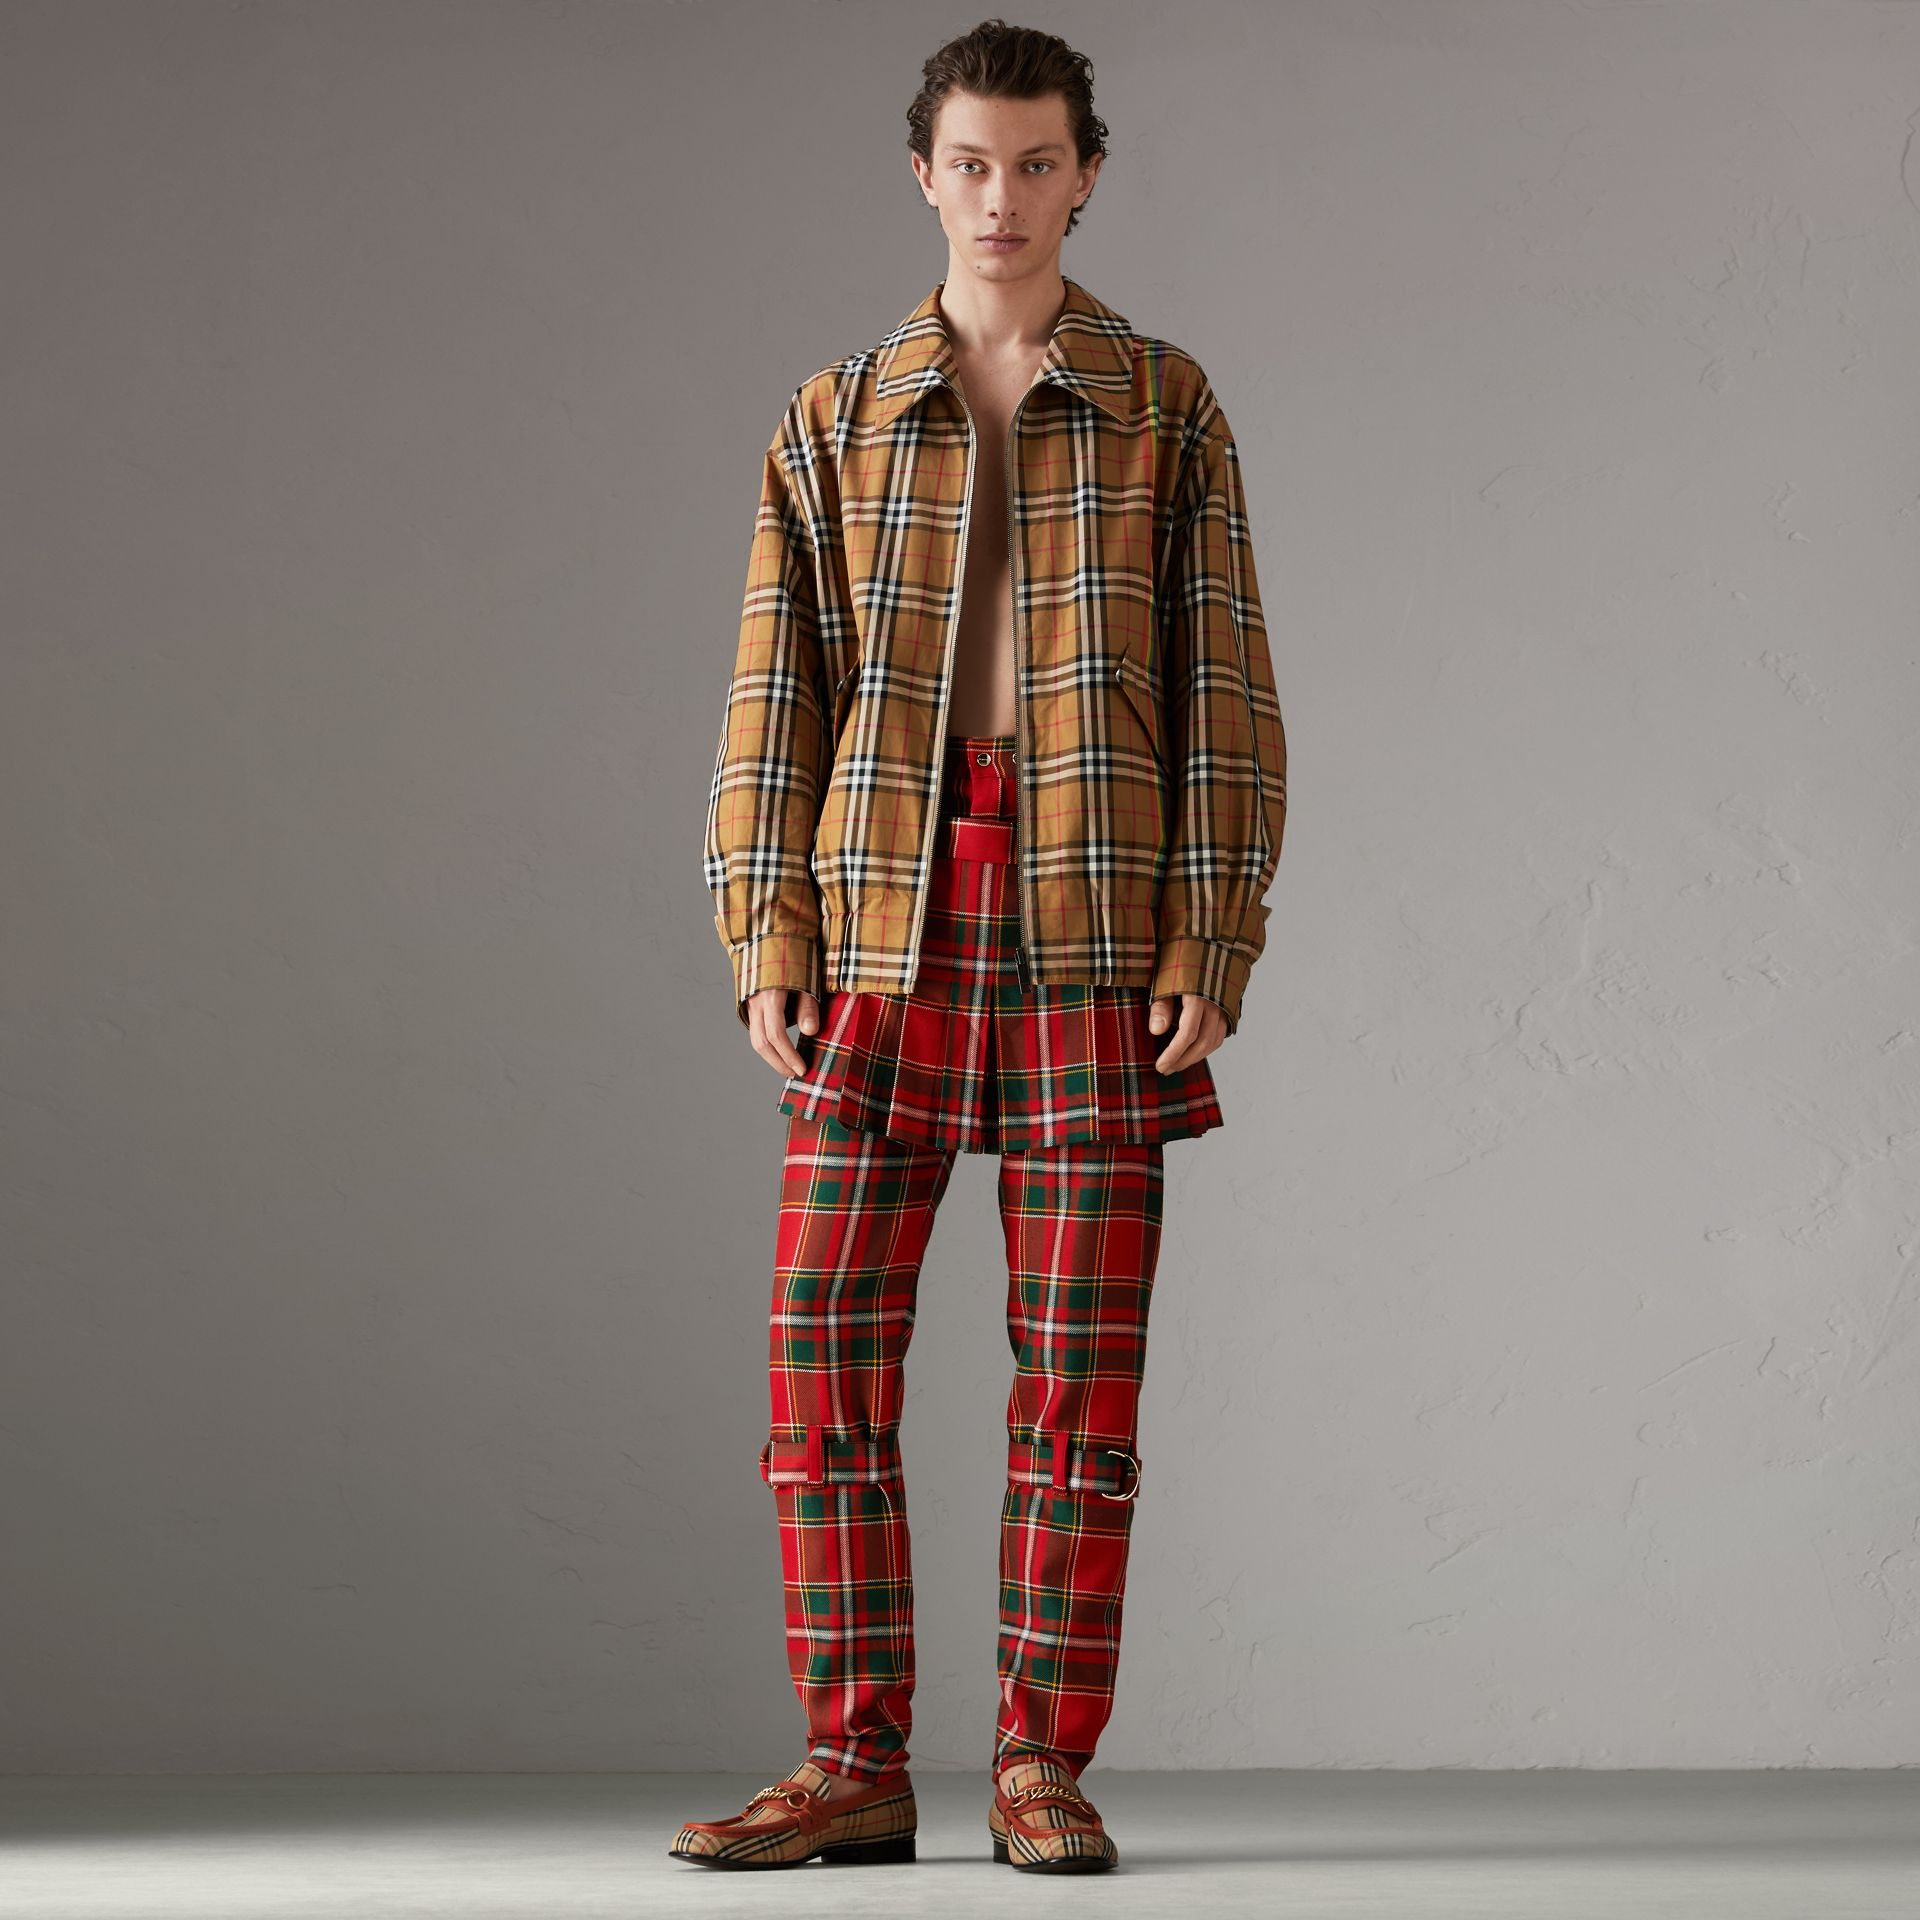 Veste Harrington à motif Rainbow Vintage check (Jaune Antique/arc-en-ciel) - Homme | Burberry - photo de la galerie 0